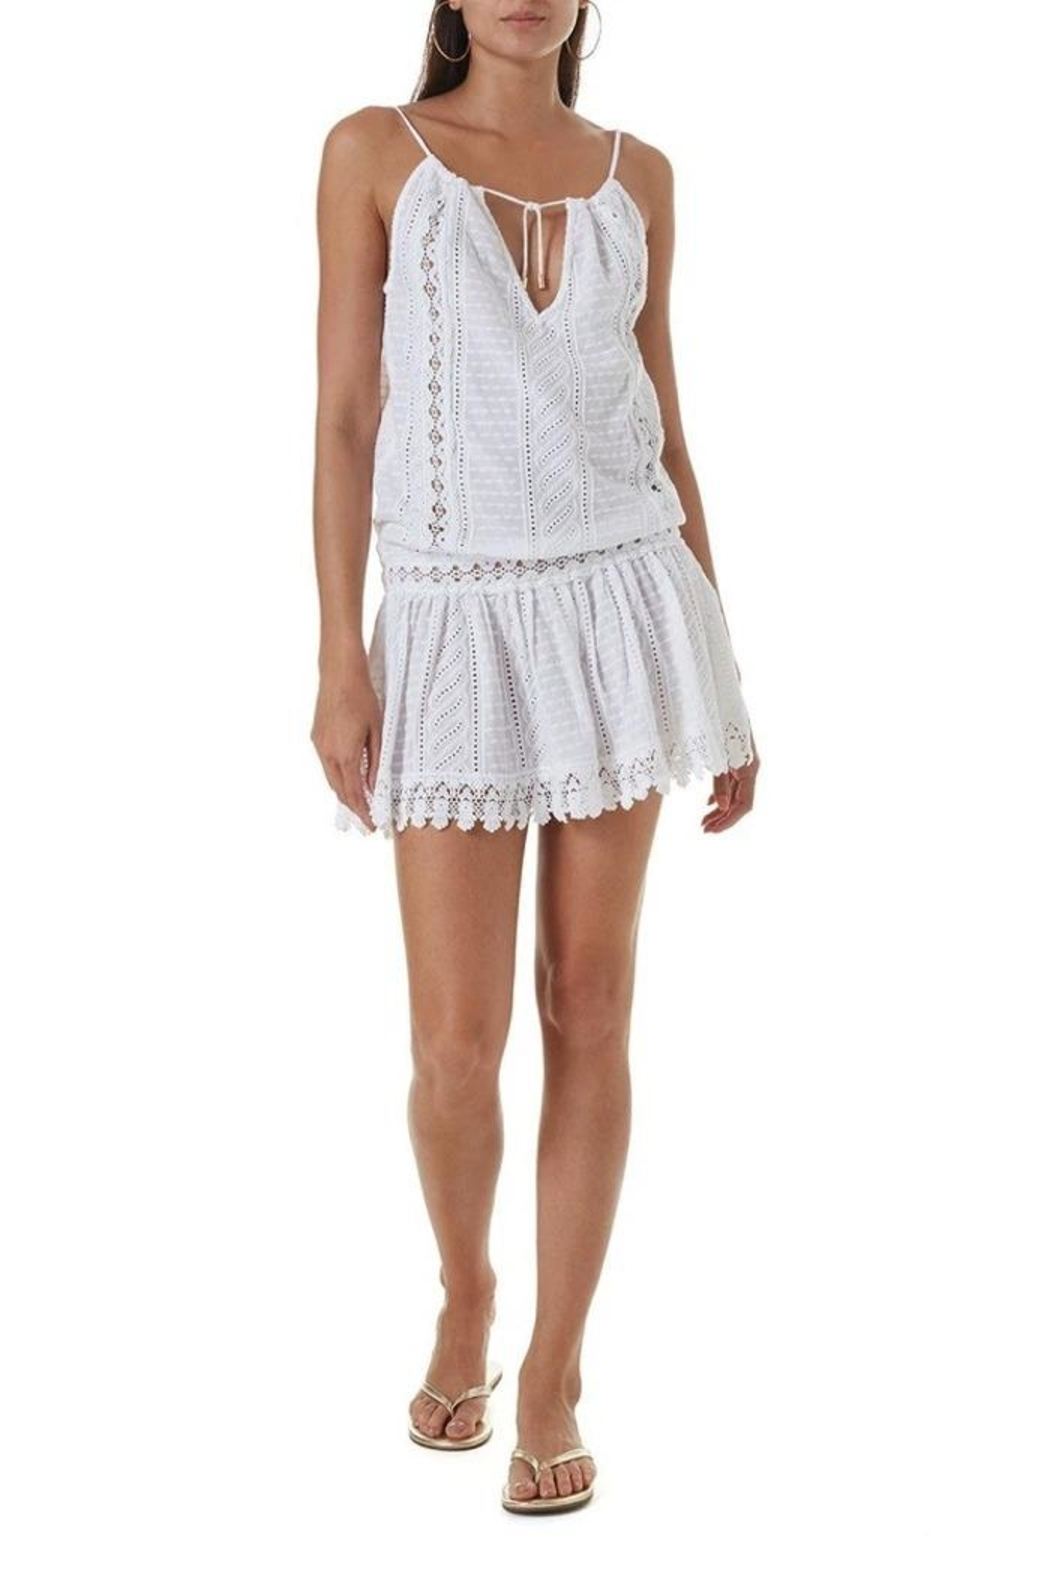 Melissa Odabash Chelsea Short Dress - Main Image